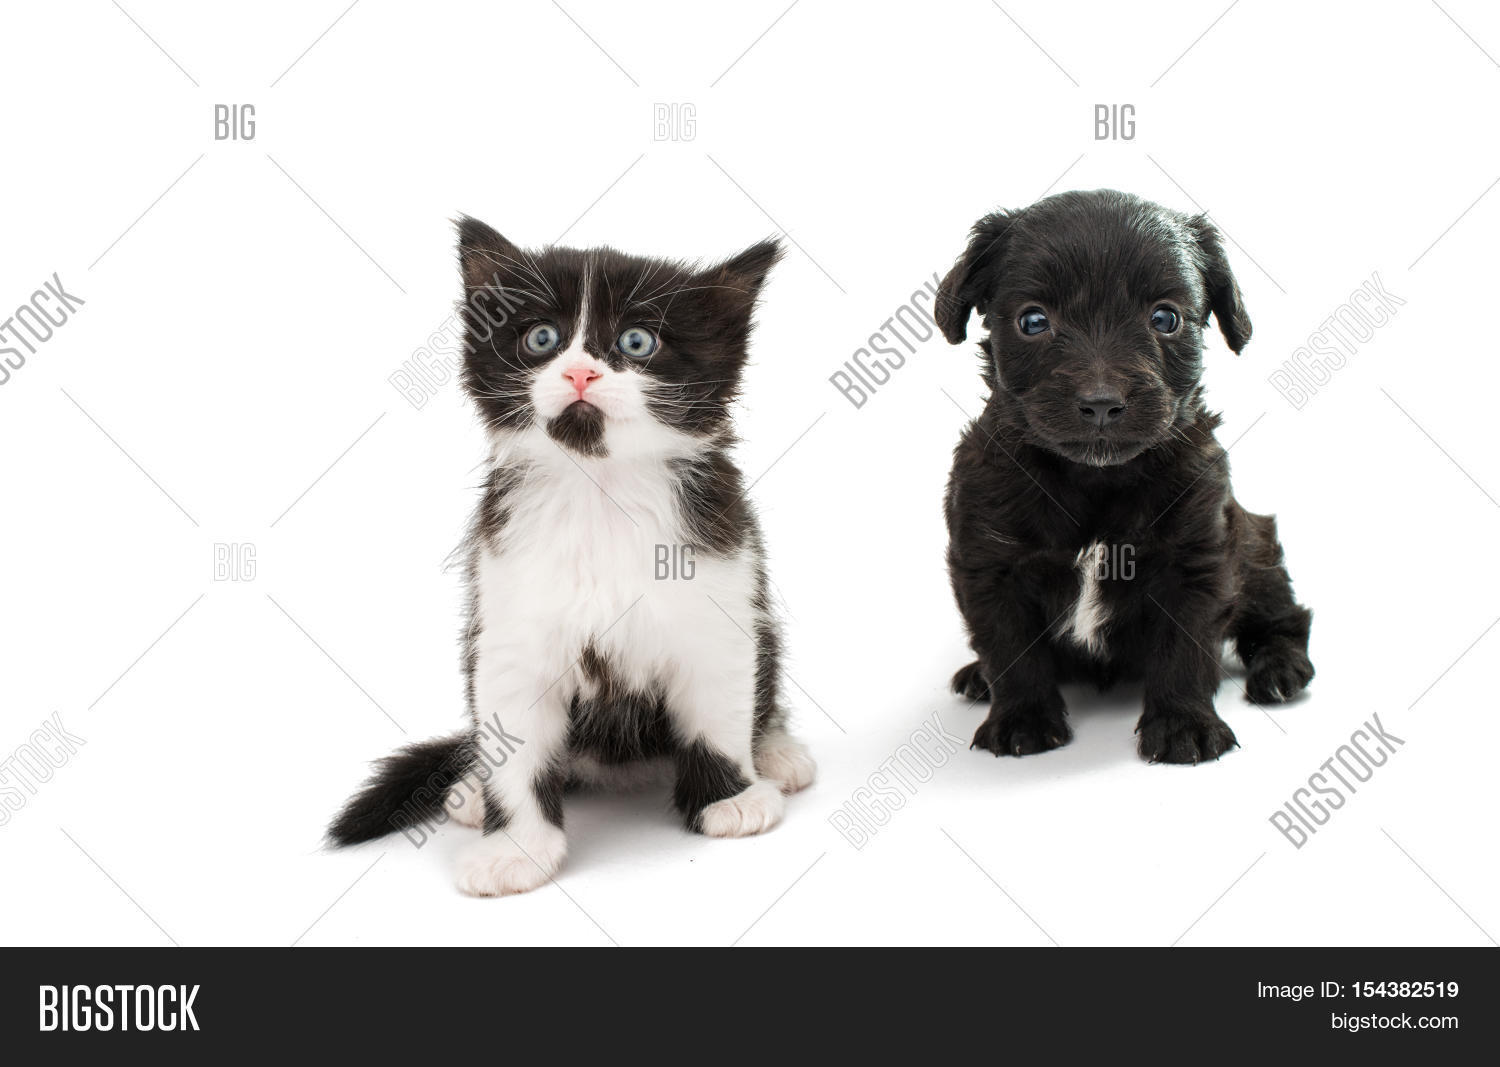 Black Spaniel Puppy Image Photo Free Trial Bigstock